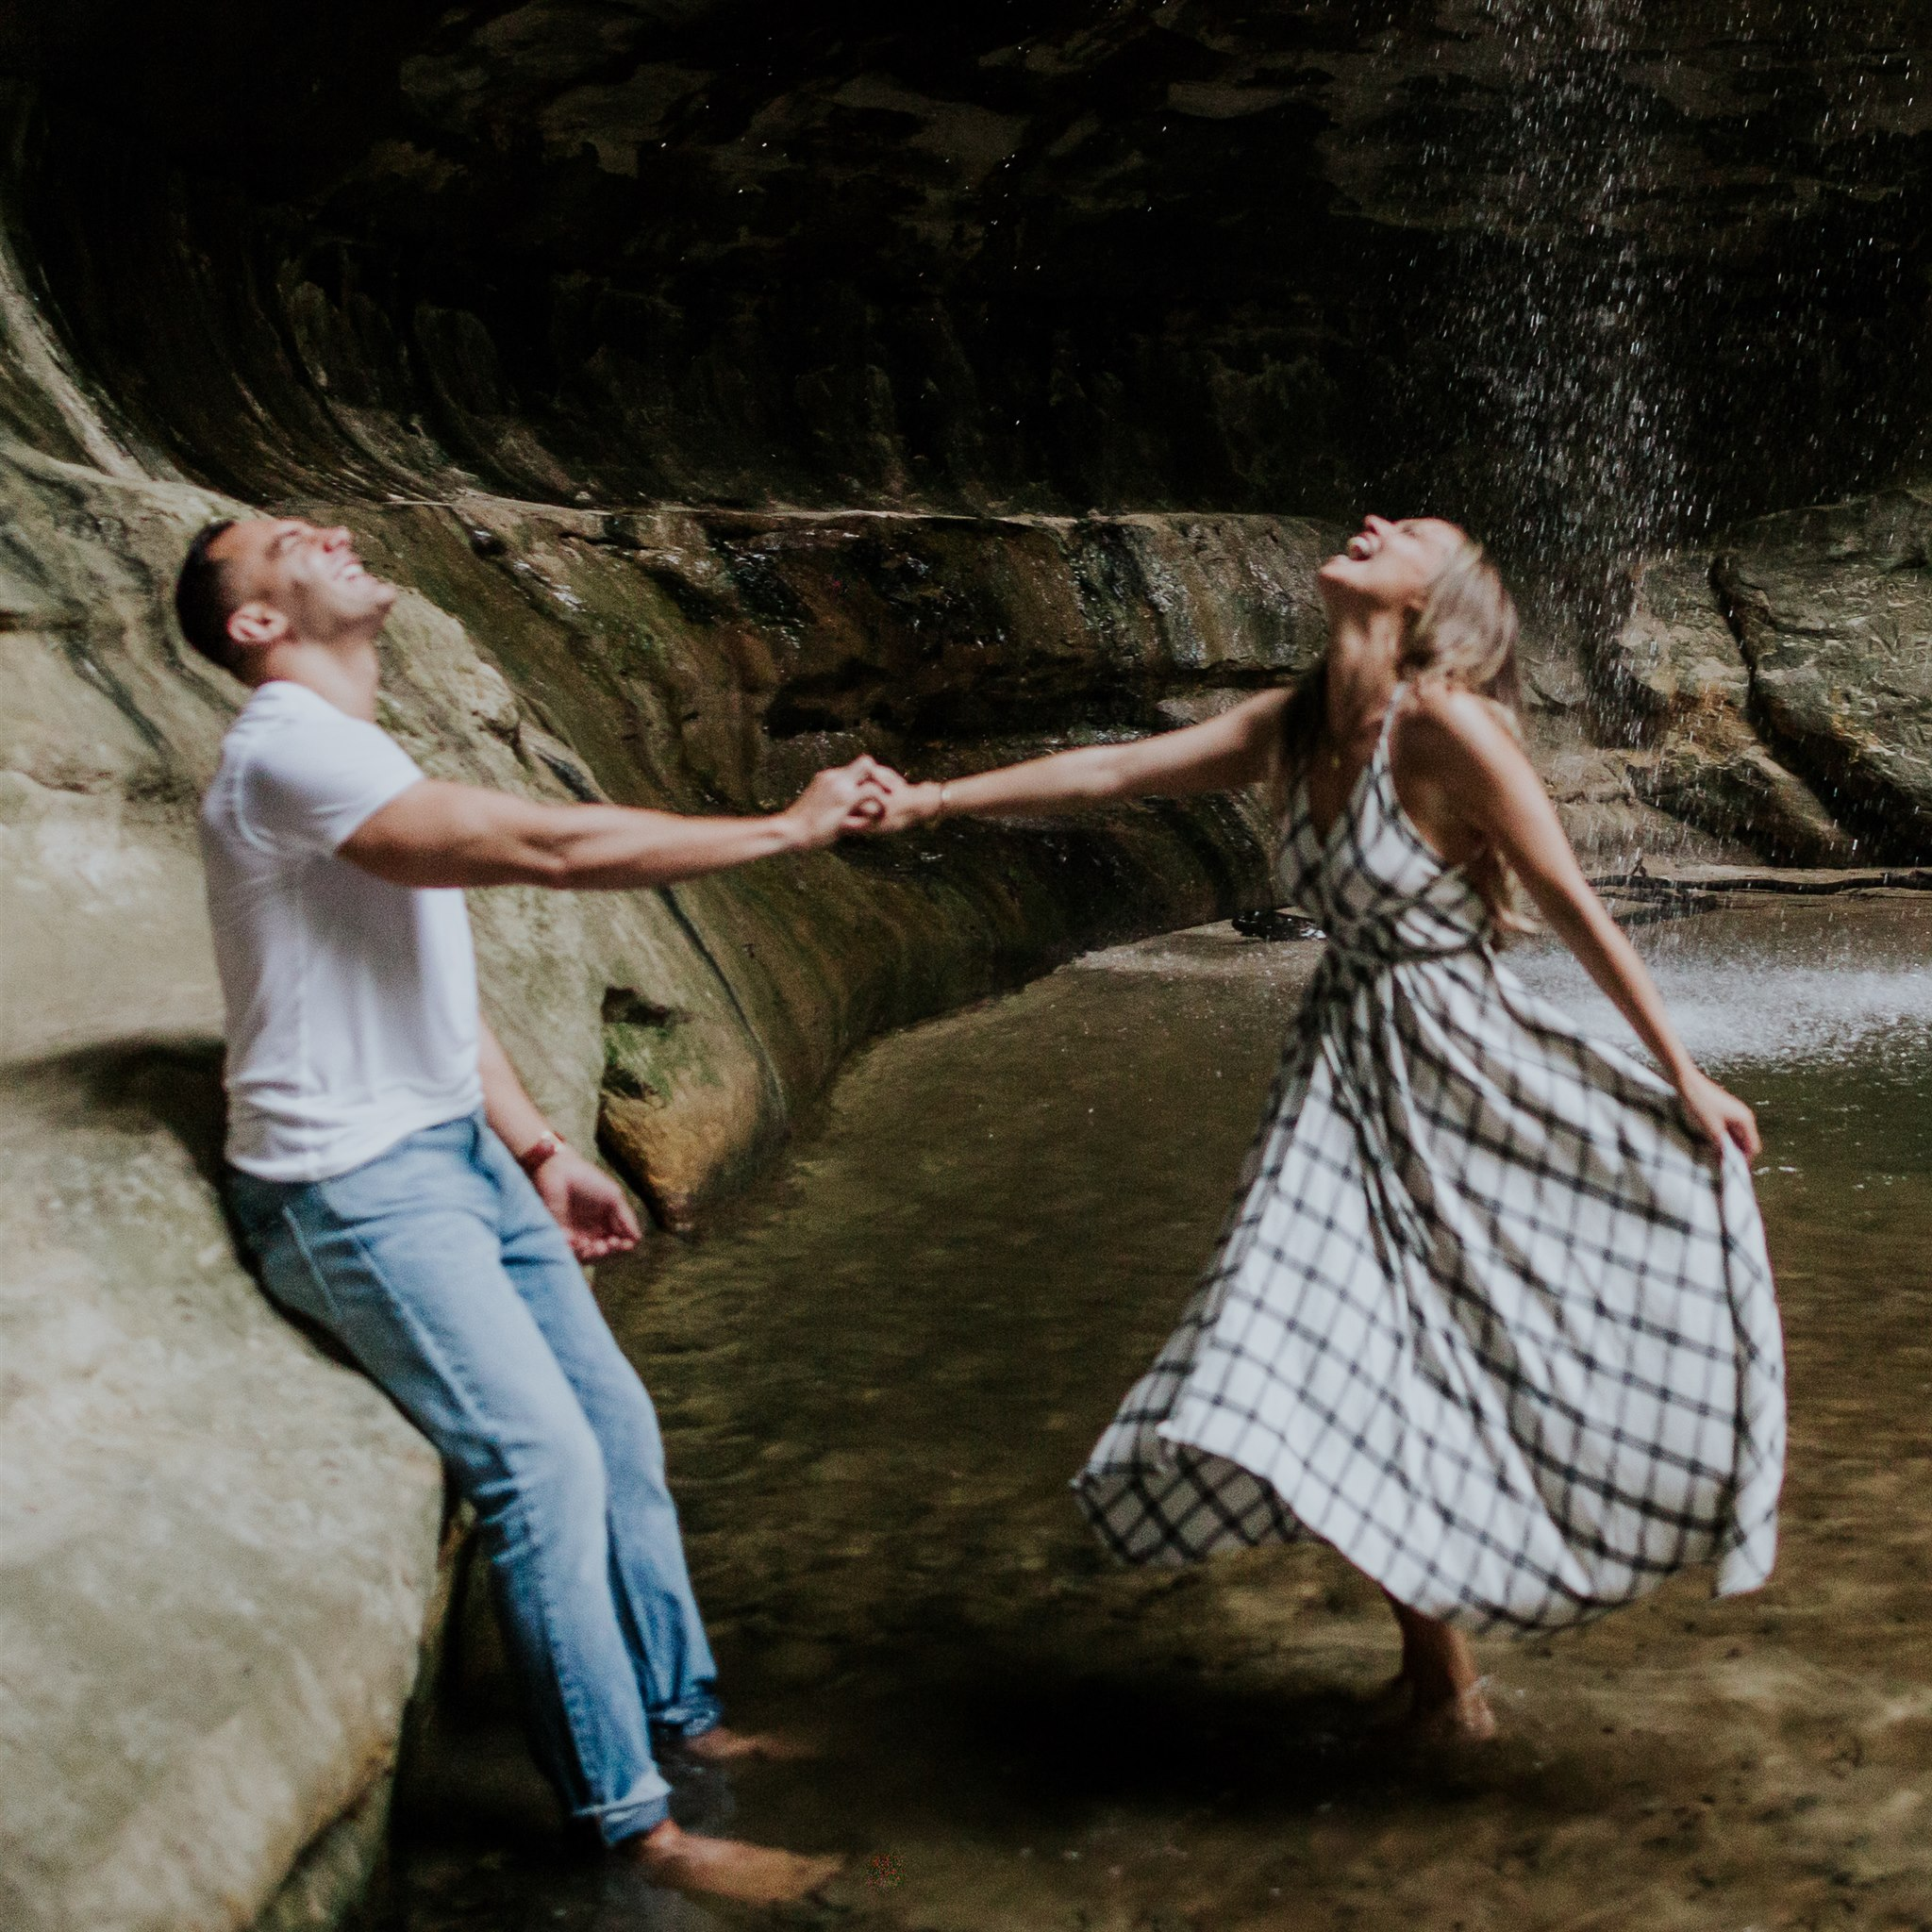 engagement photo ideas waterfall